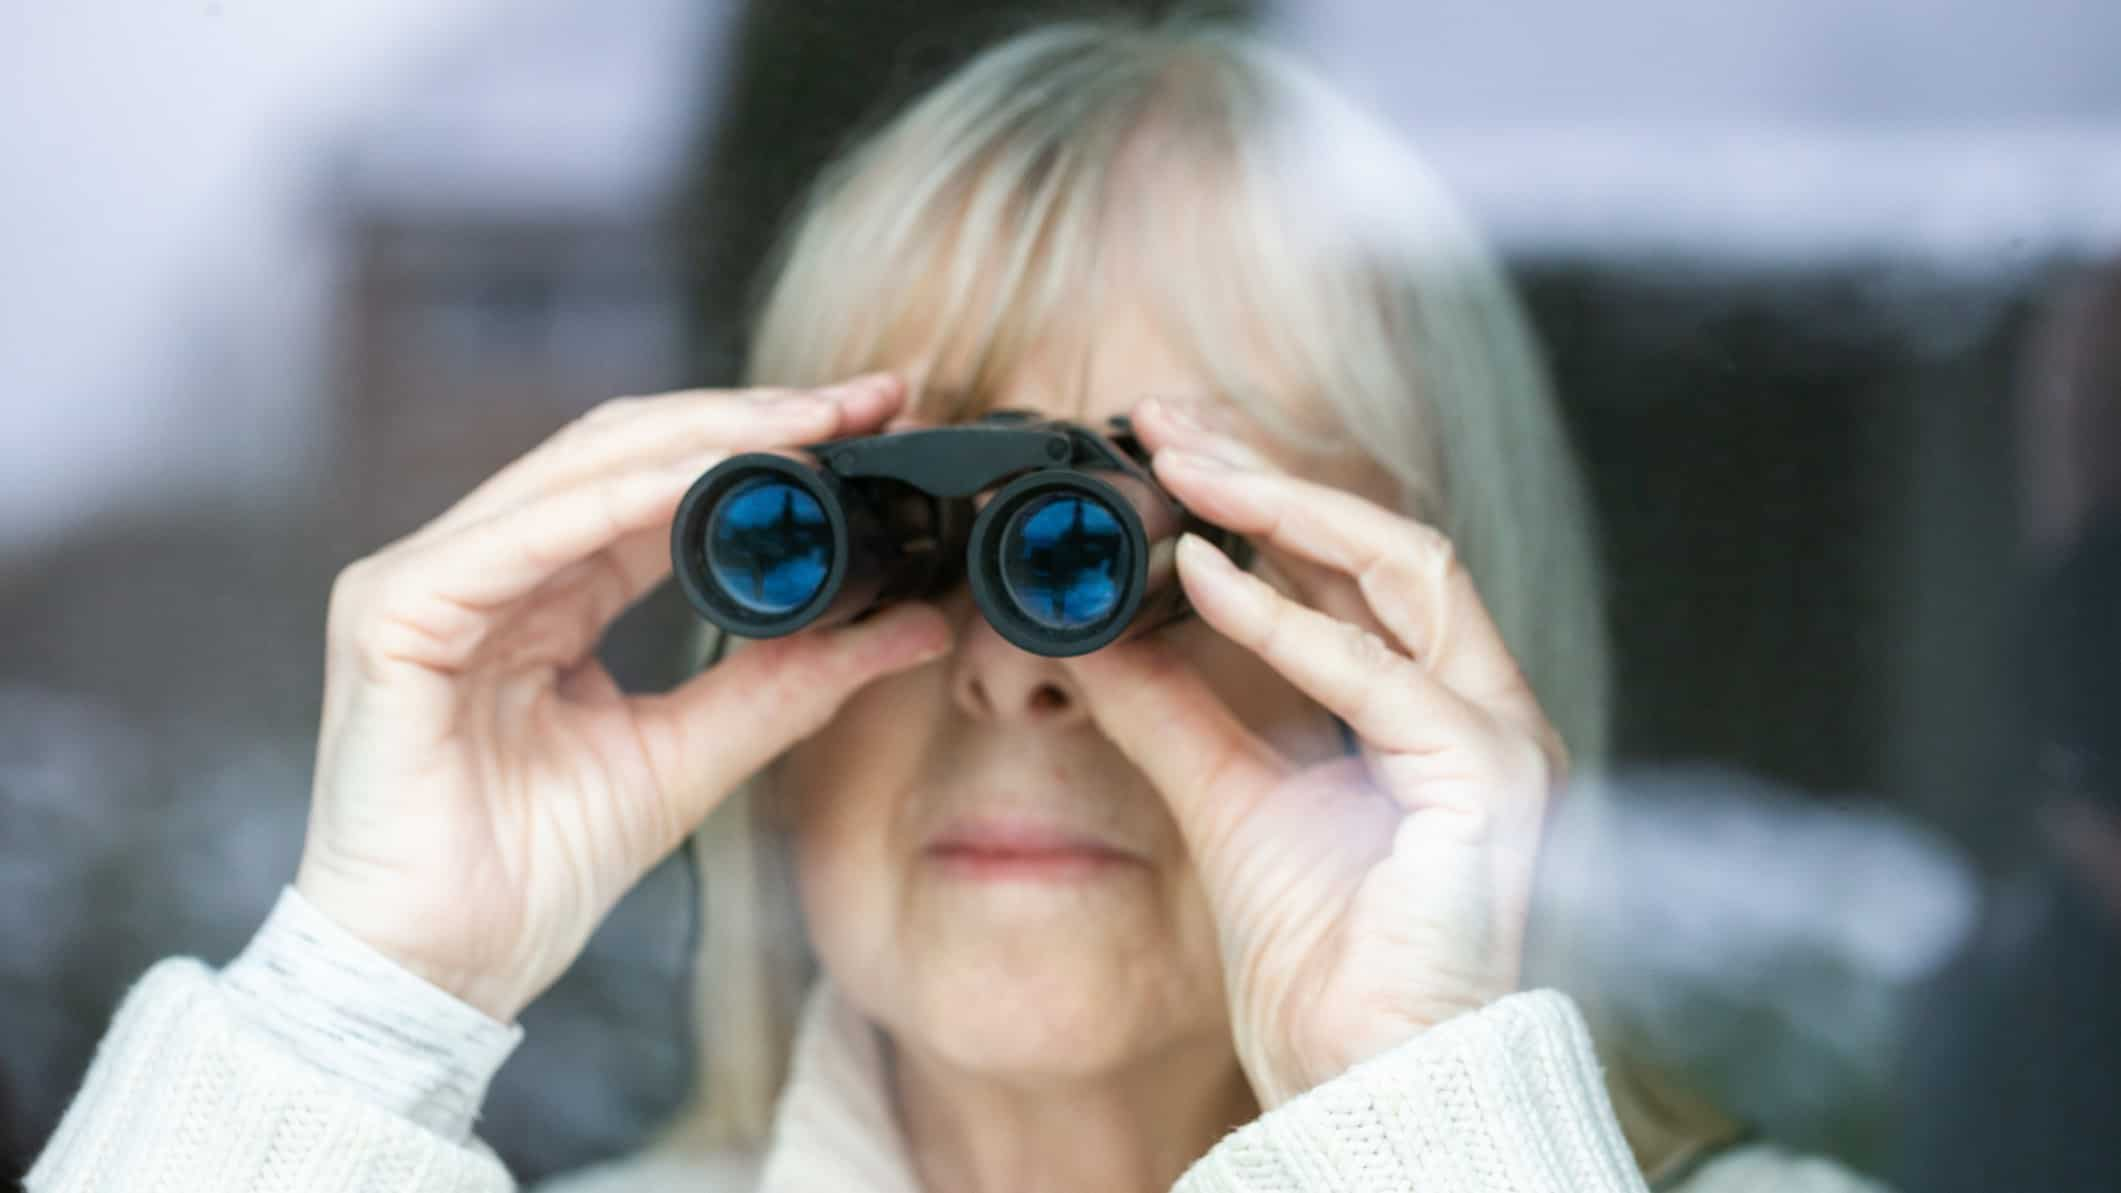 asx share price on watch represented by lady looking through pair of binoculars